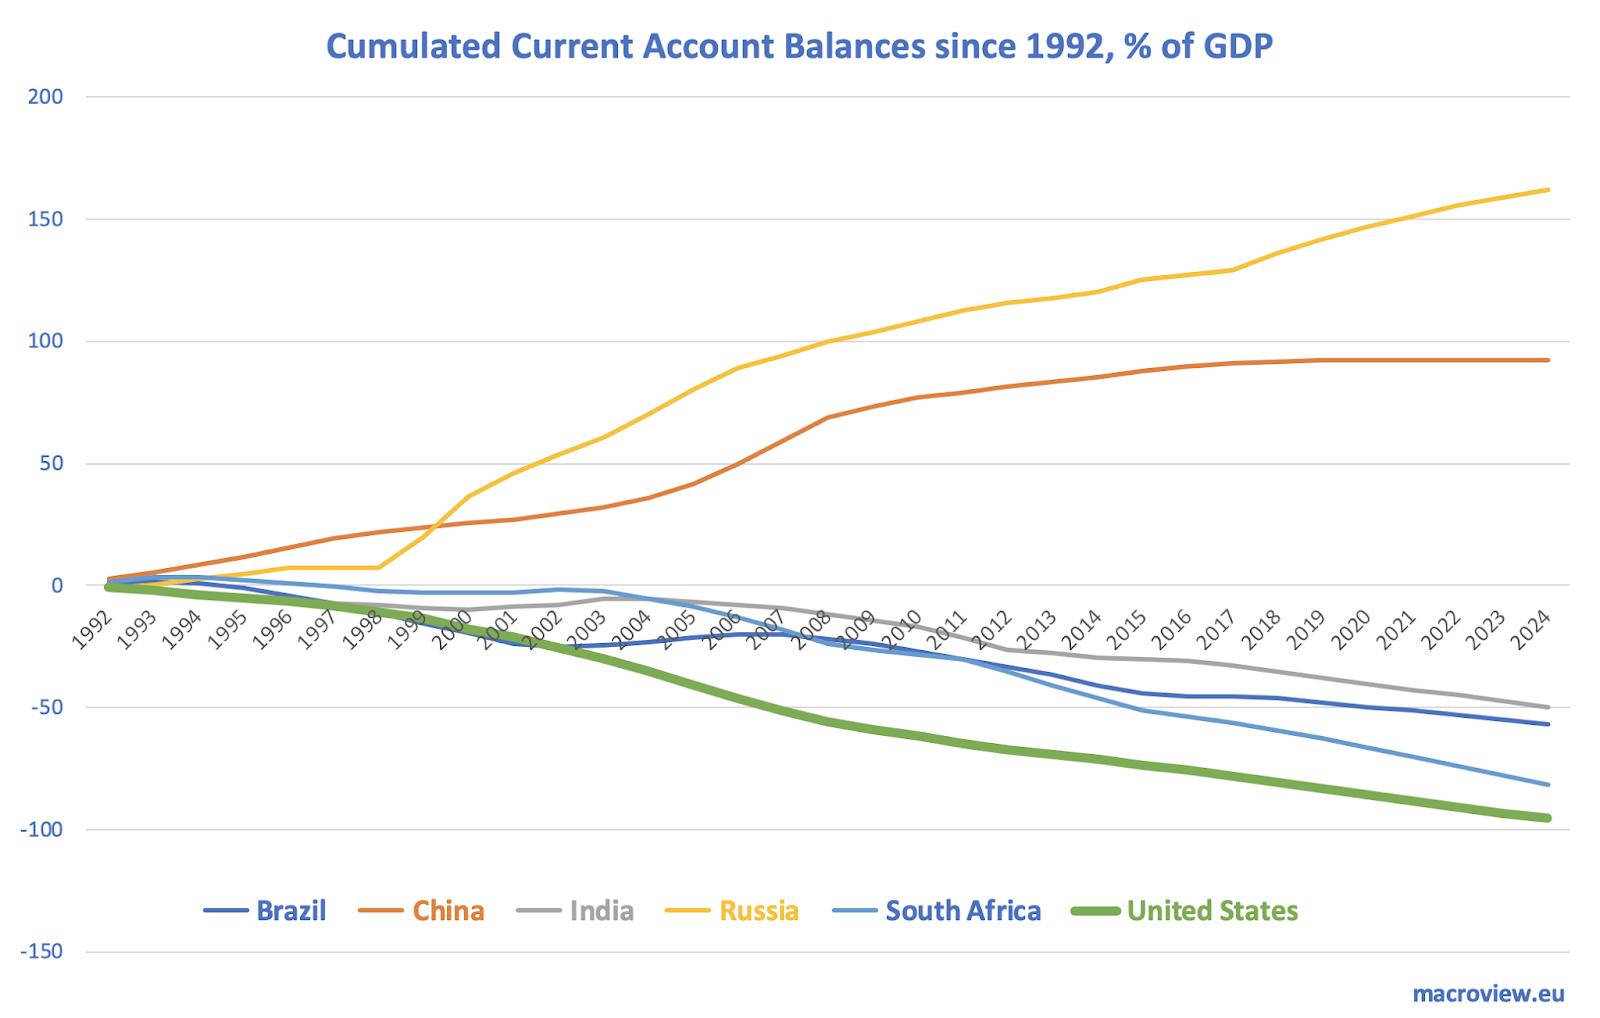 BRICS Current Account Surpluses: It's Russia And China Story